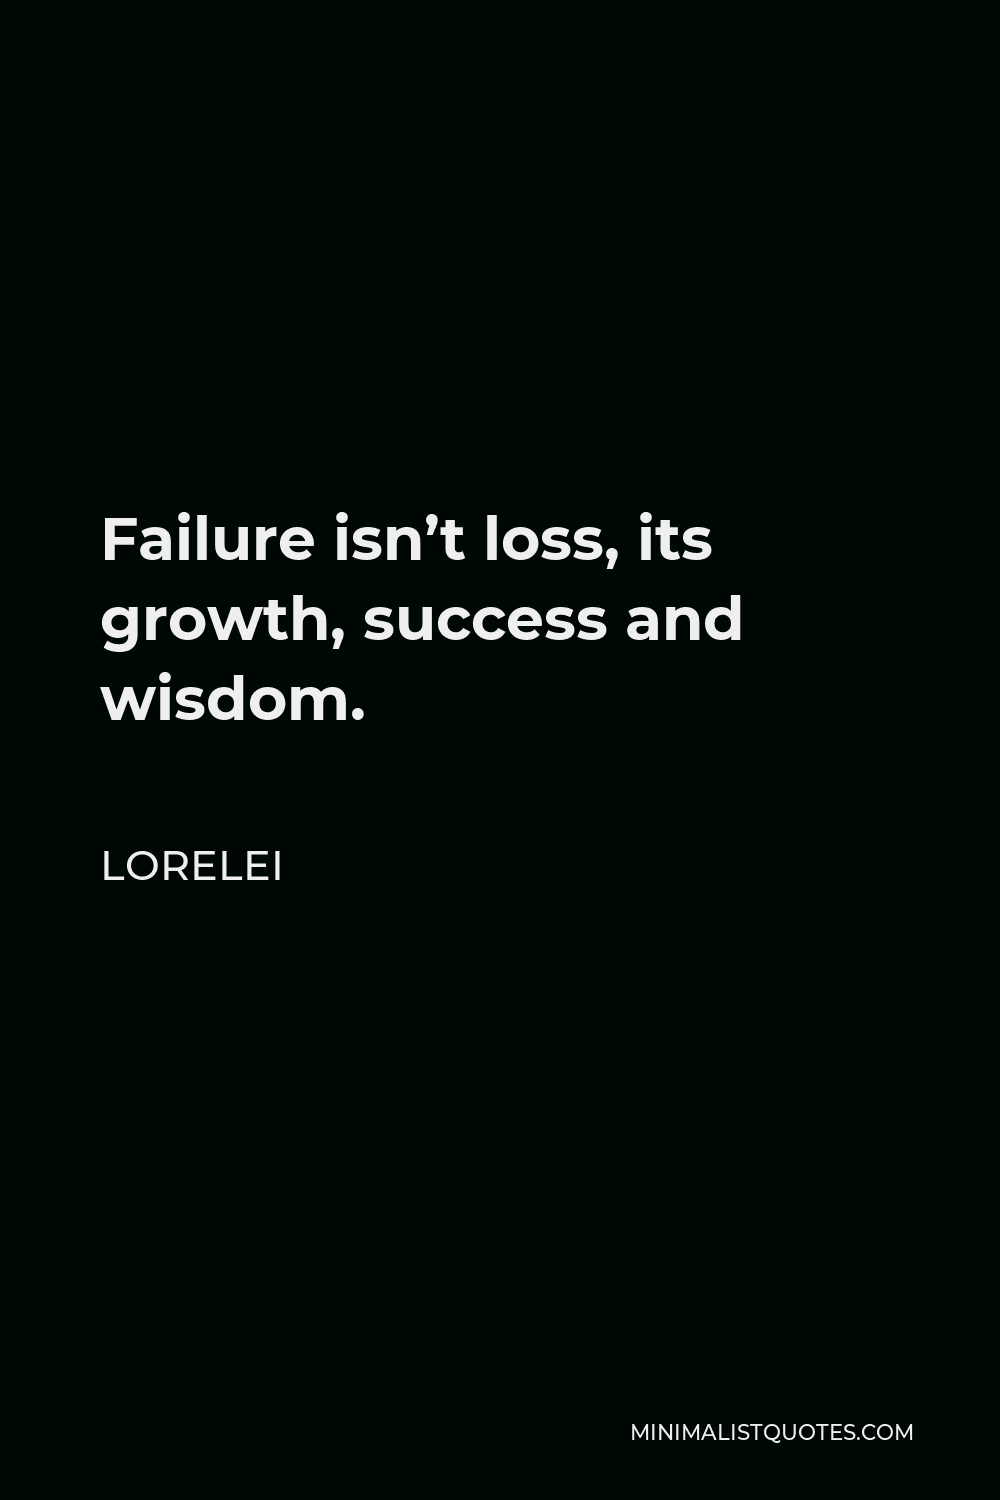 Lorelei Quote - Failure isn't loss, its growth, success and wisdom.